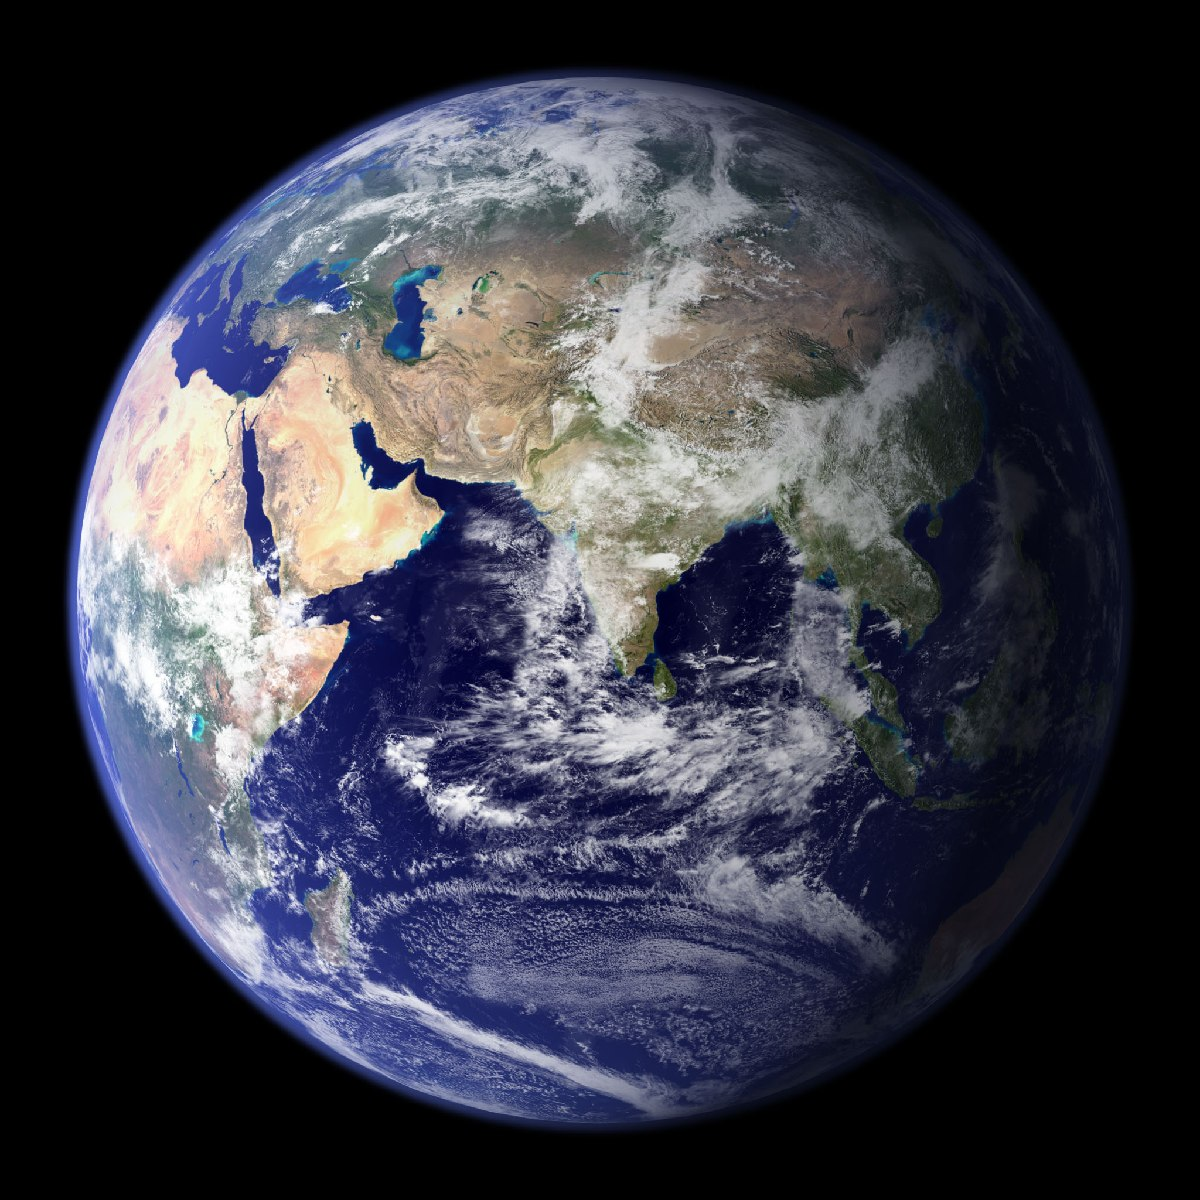 Hey B.O.B., check this out… The earth is ROUND!